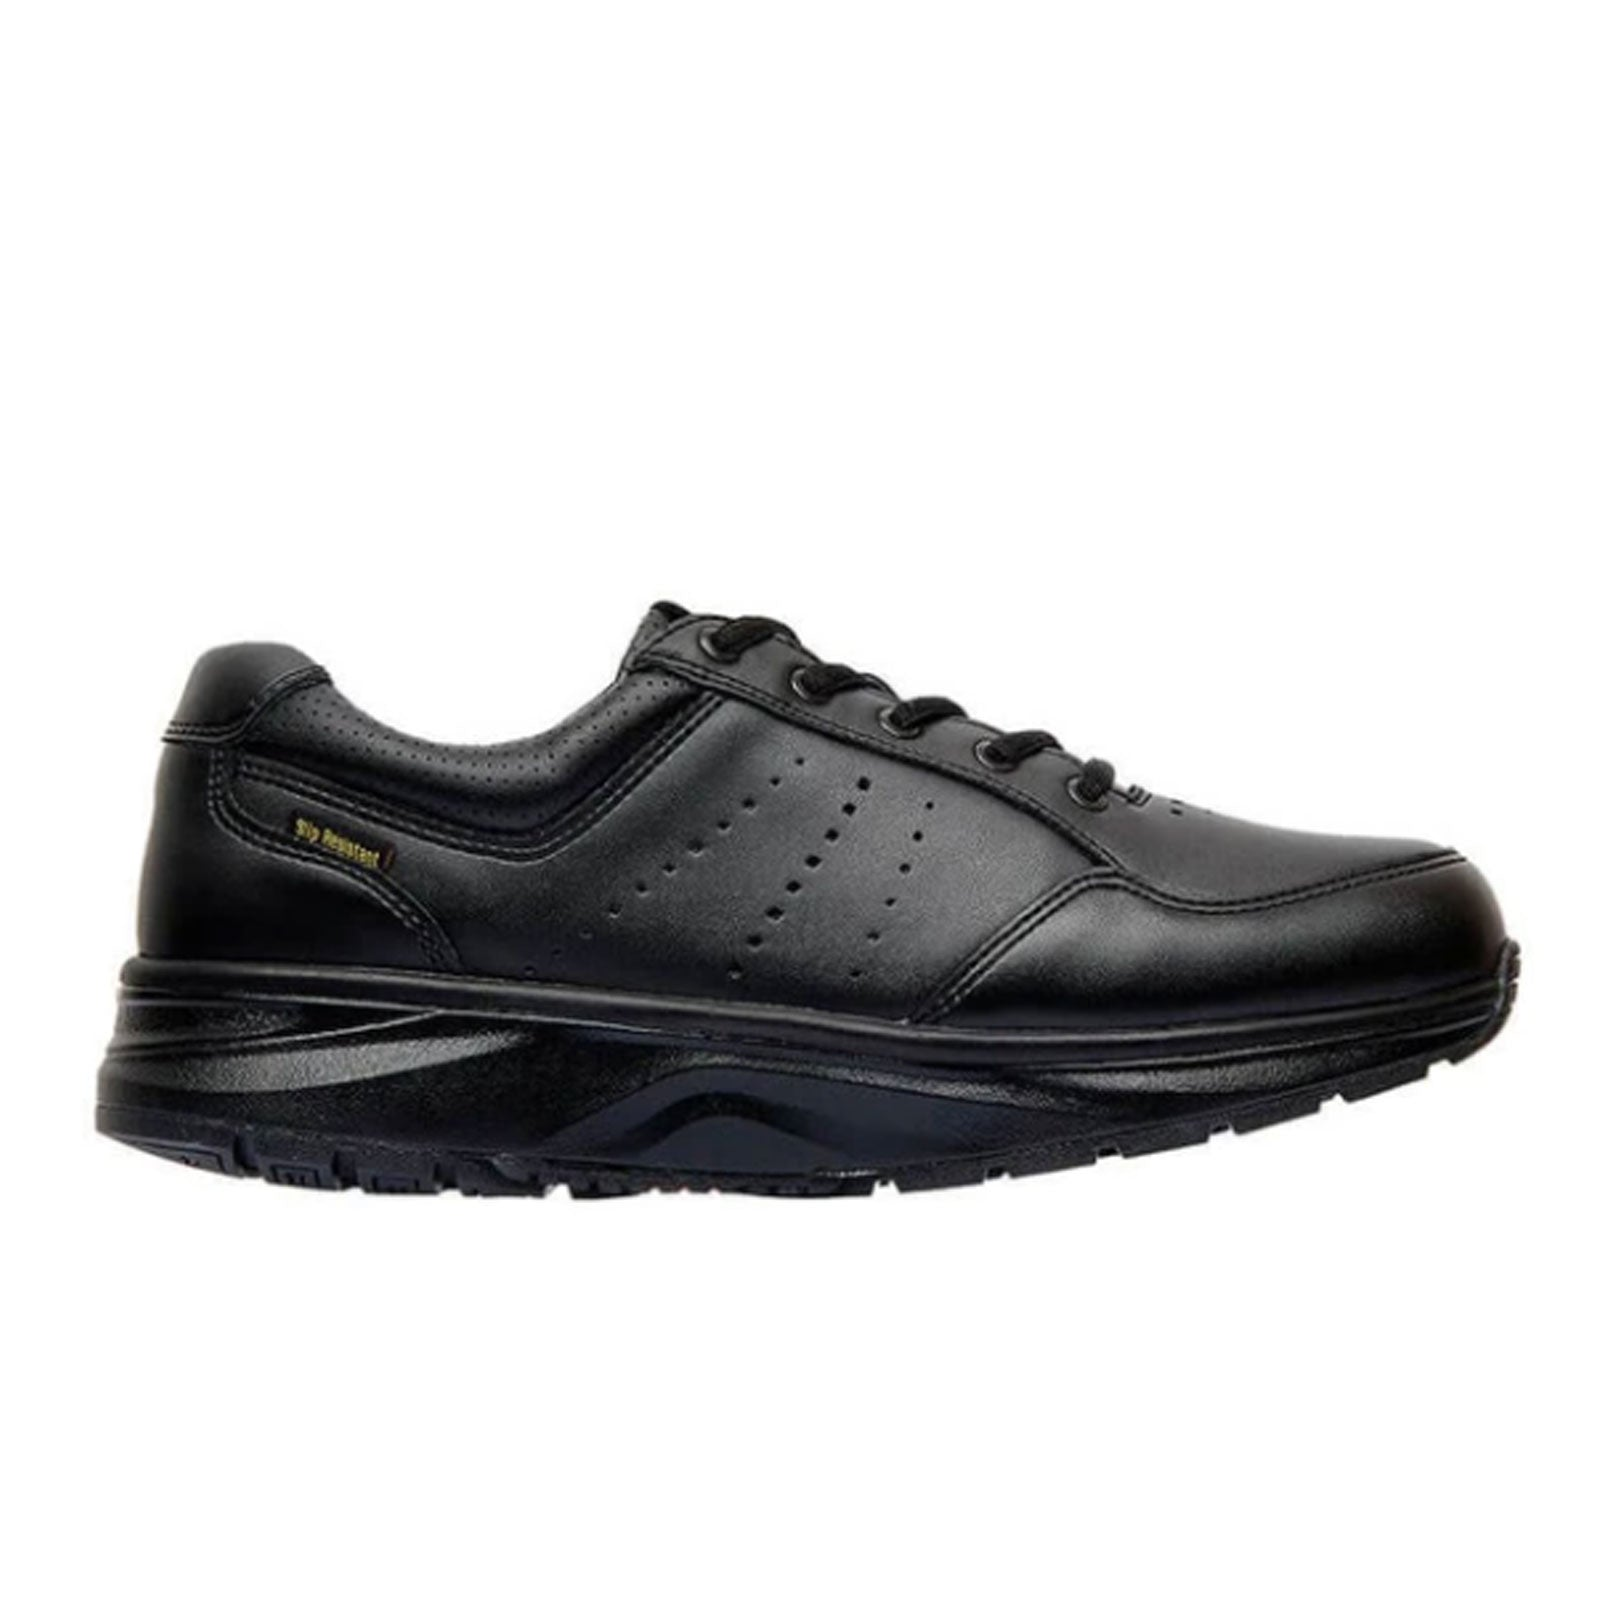 Joya Dynamo II Sr (Women) - Black Dress/Casual|Lace Ups - The Heel Shoe Fitters